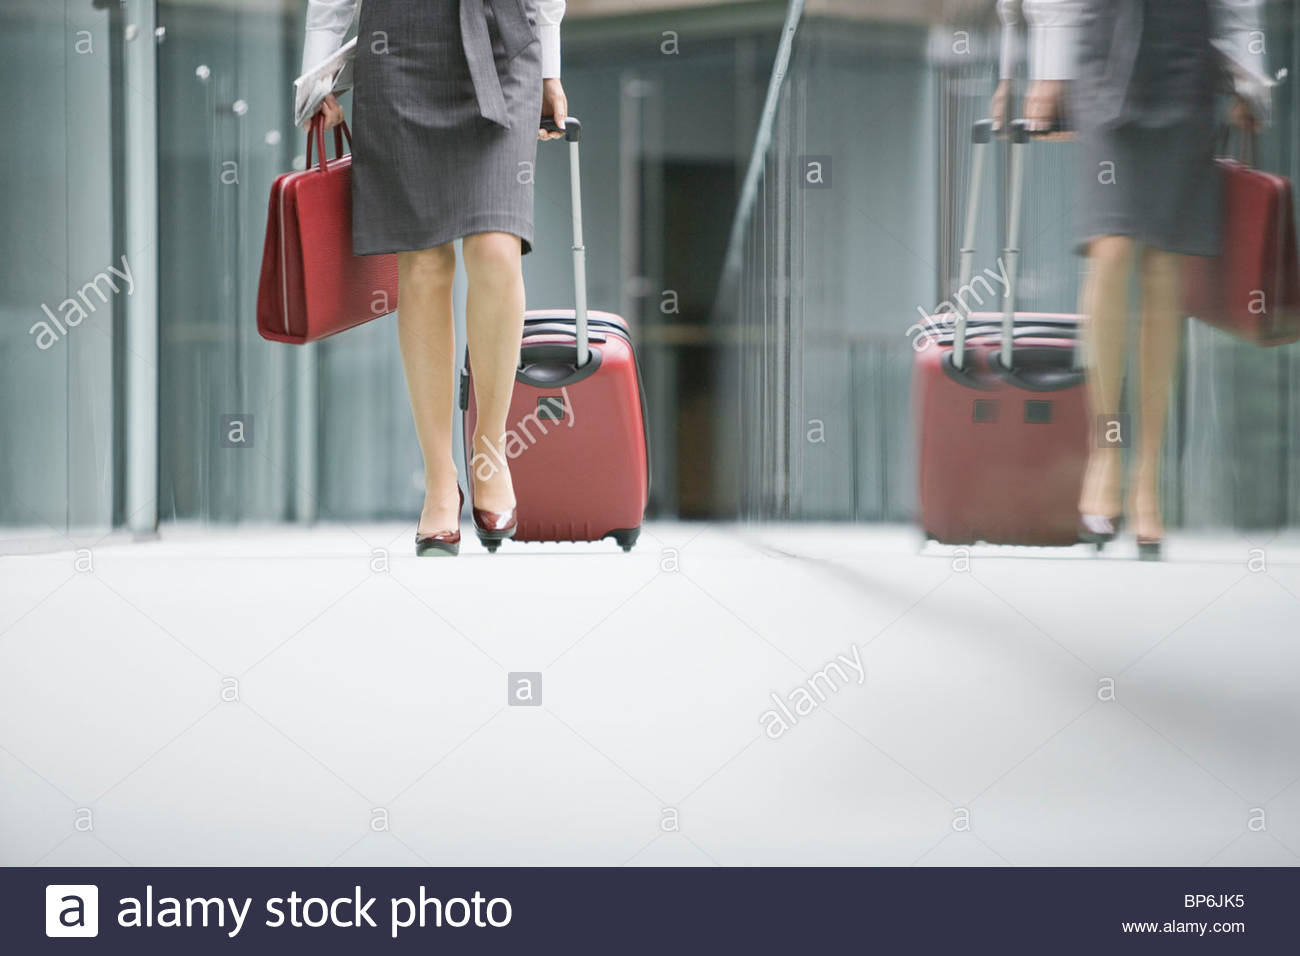 A businesswoman walking along a corridor pulling a suitcase - Stock Image